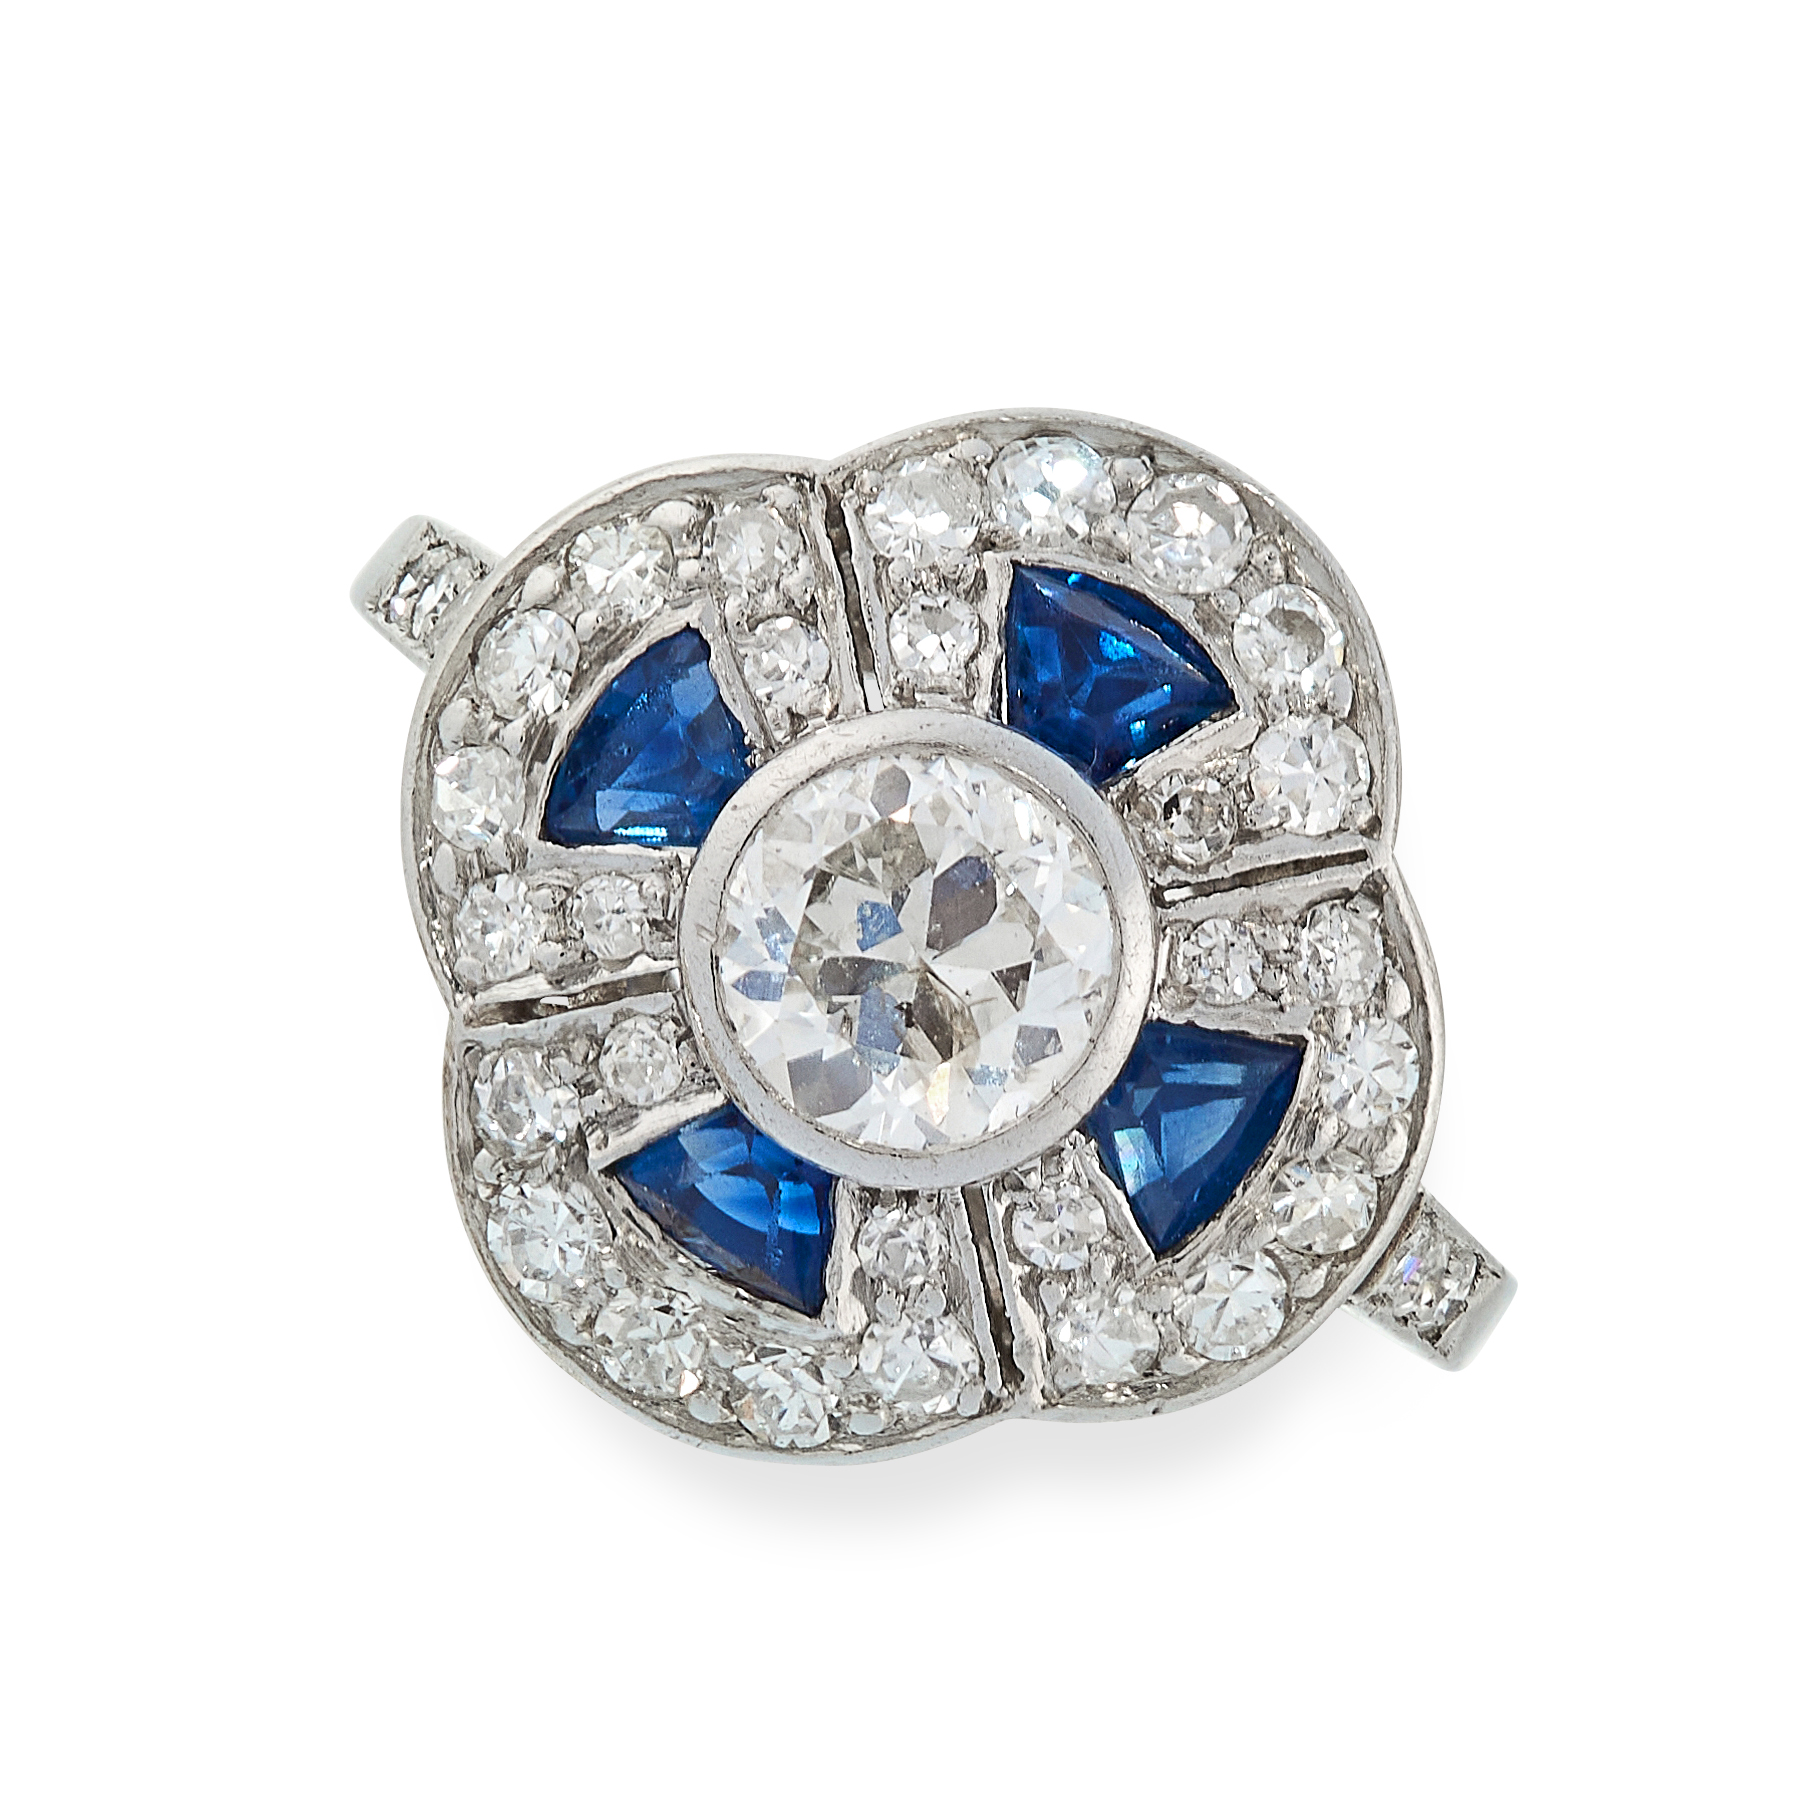 SAPPHIRE AND DIAMOND RING in cluster form, set with an old cut diamond of 0.50 carats in a border of